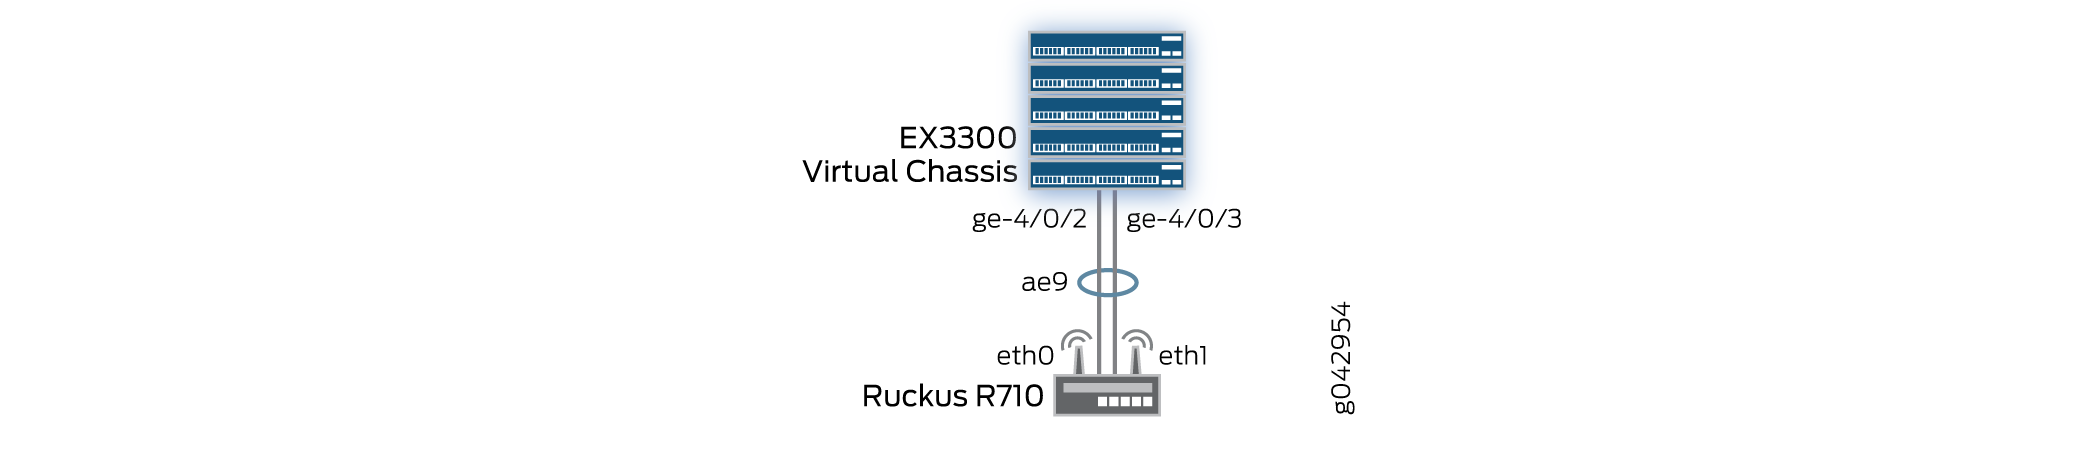 Example: Configuring Link Aggregation with Ruckus Wireless